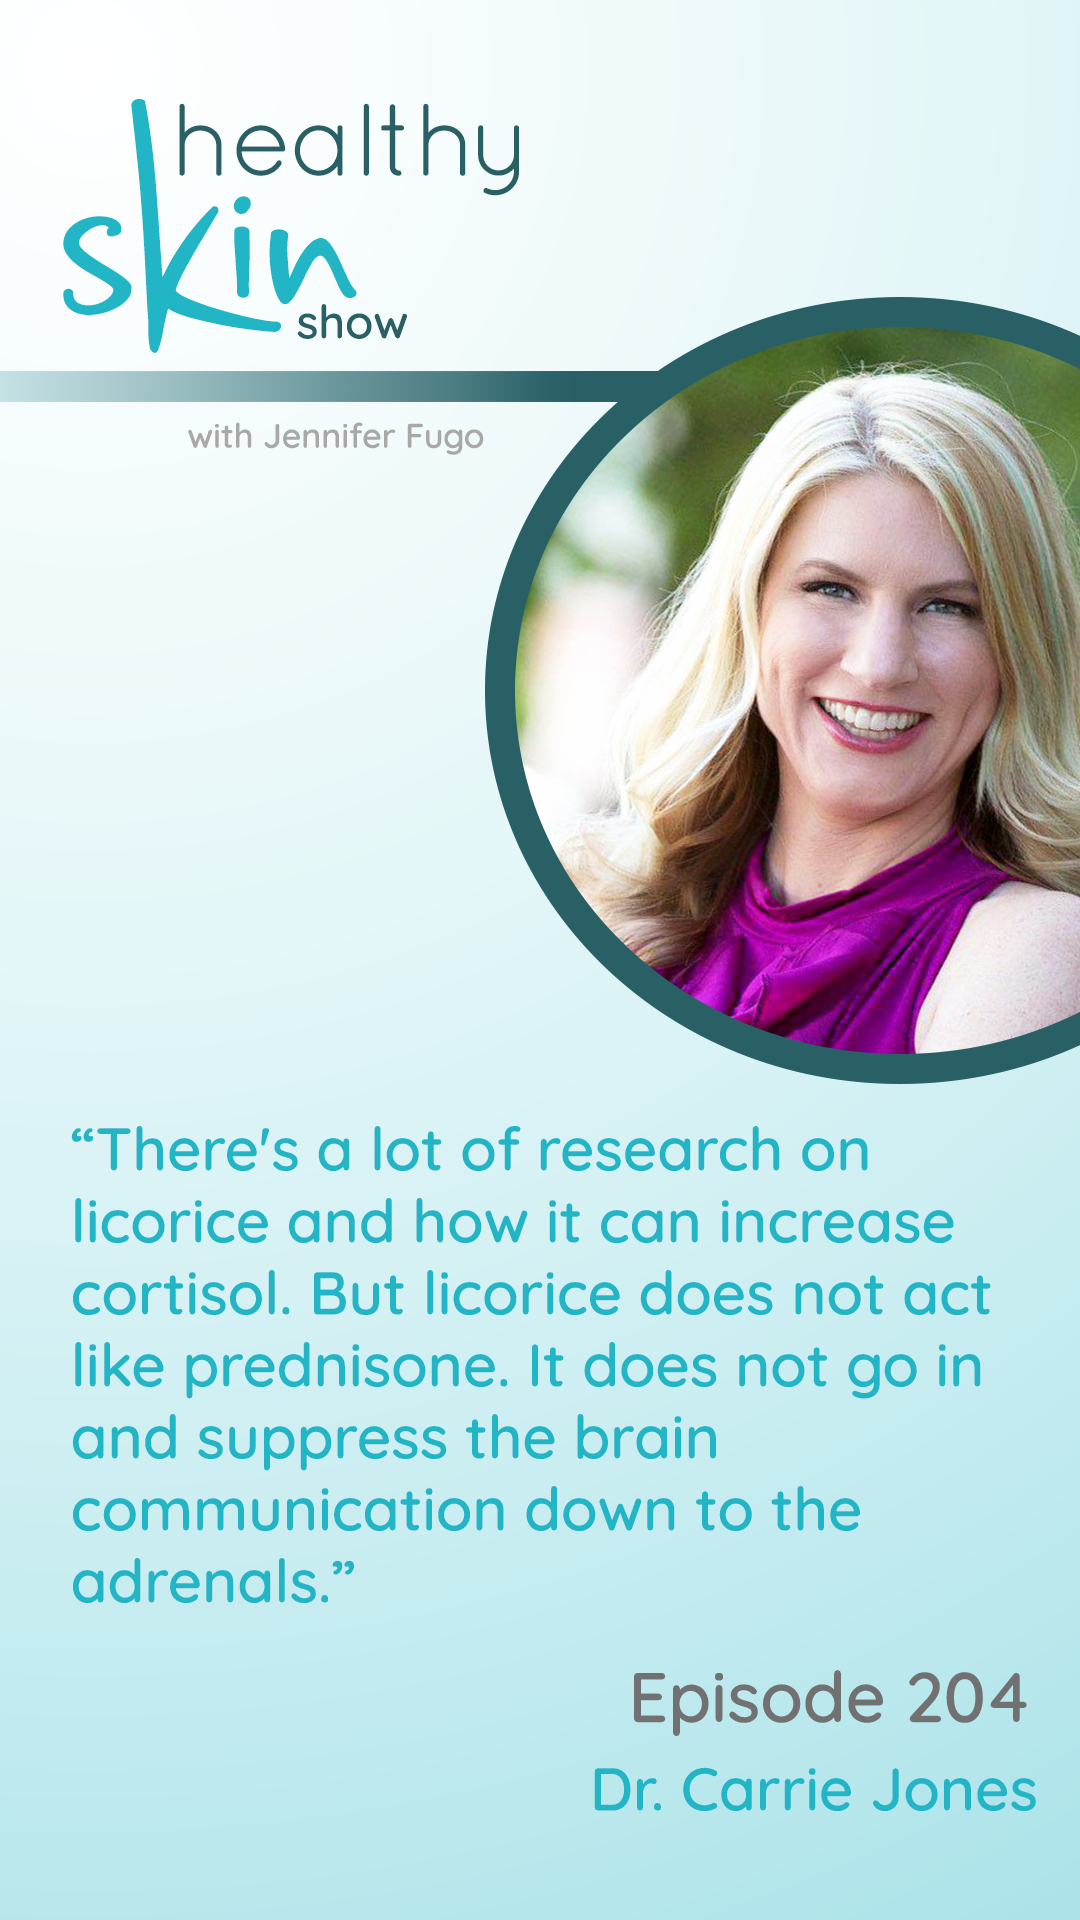 """""""There's a lot of research on licorice and how it can increase cortisol. But licorice does not act like prednisone. It does not go in and suppress the brain communication down to the adrenals."""""""